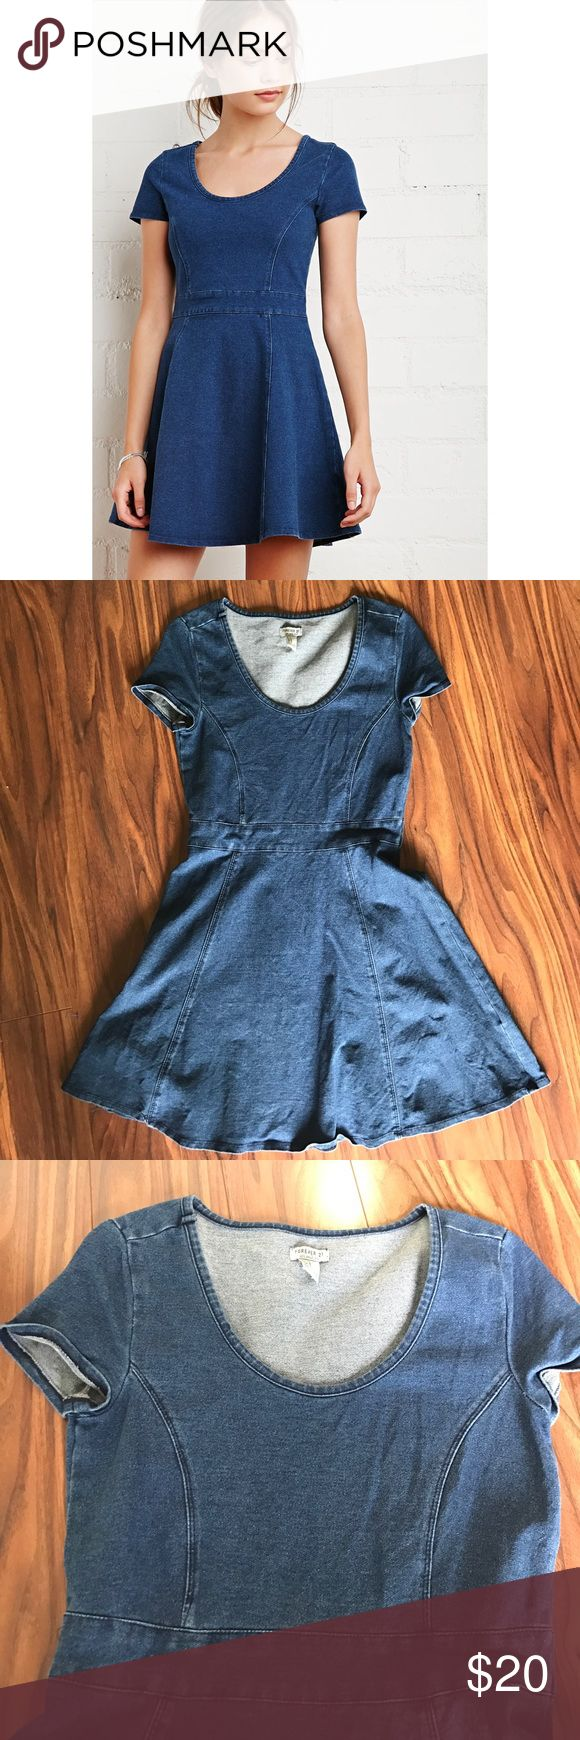 🔥SALE🔥 denim skater dress Size small from F21 not Zara. Worn once. Bundle with 2 more items for 30% off Zara Dresses